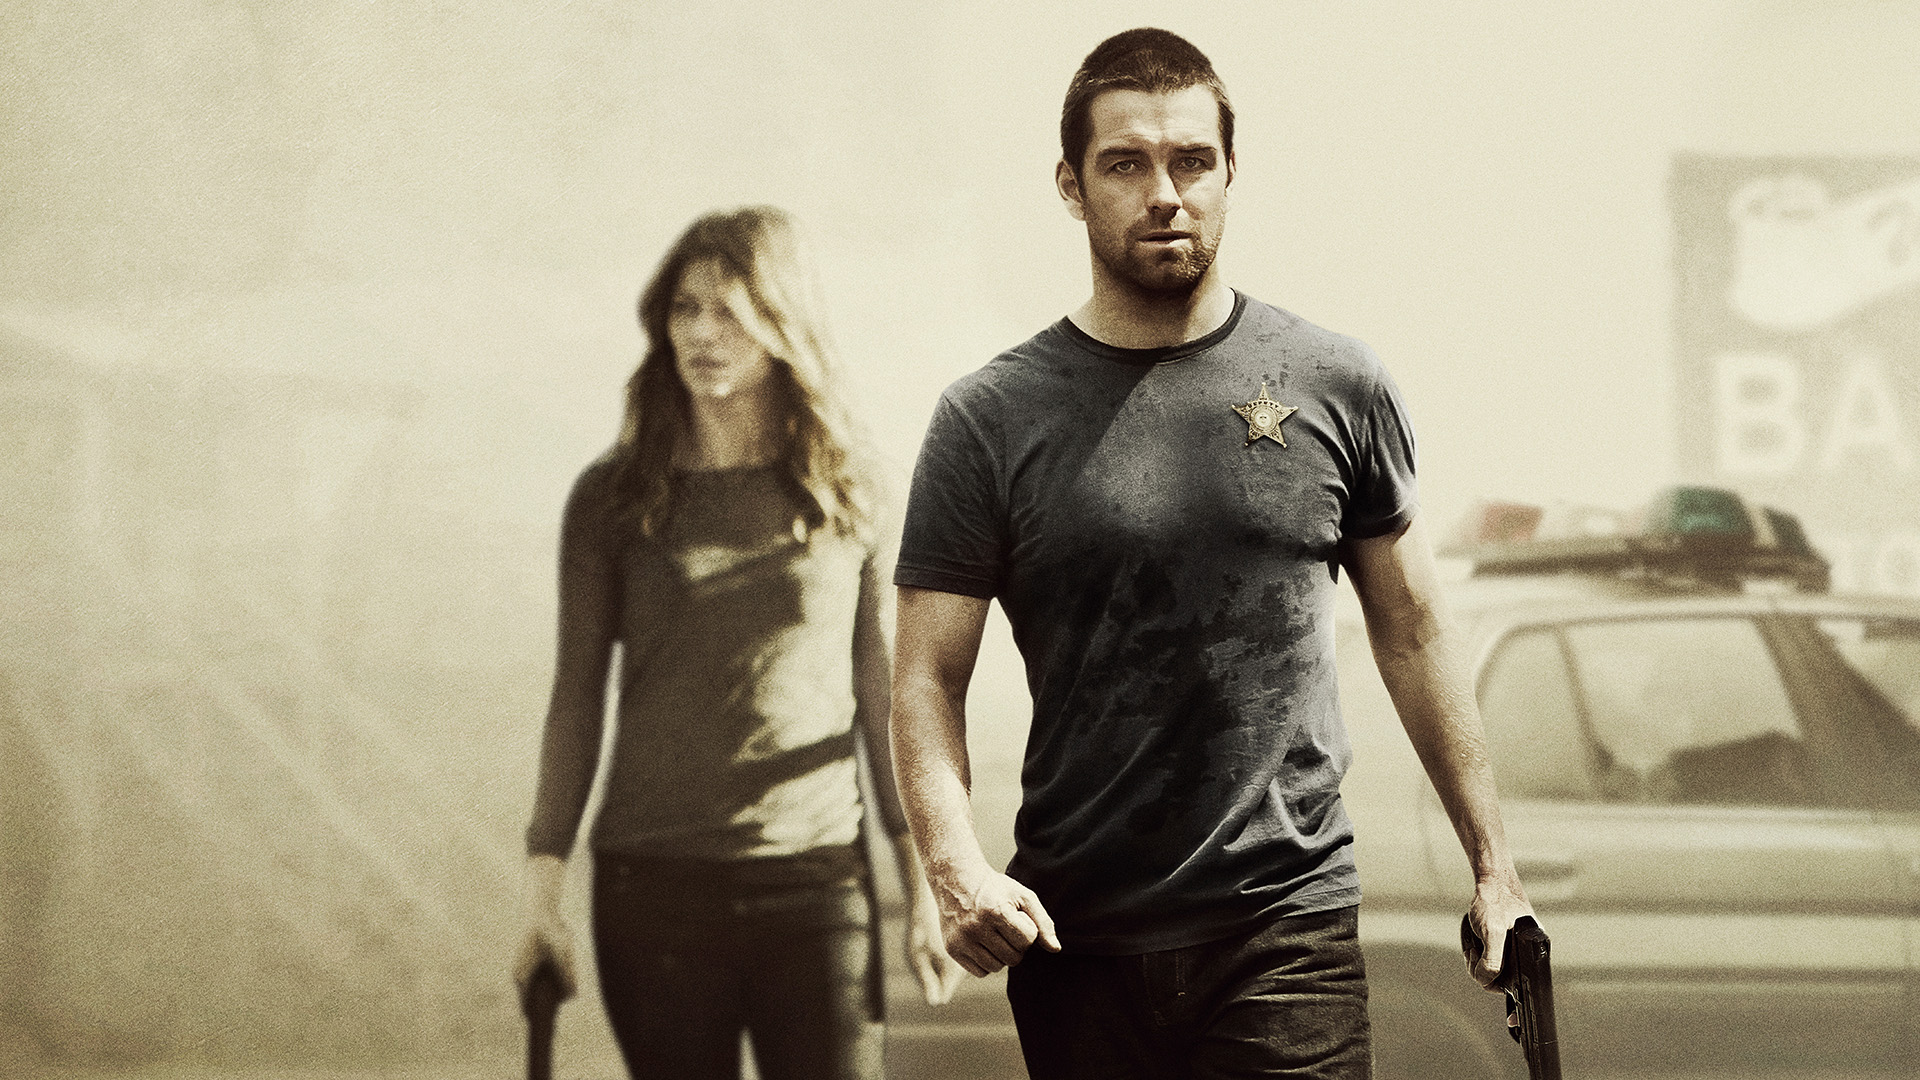 banshee-tv-series-poster-hd-wallpaper.jpg